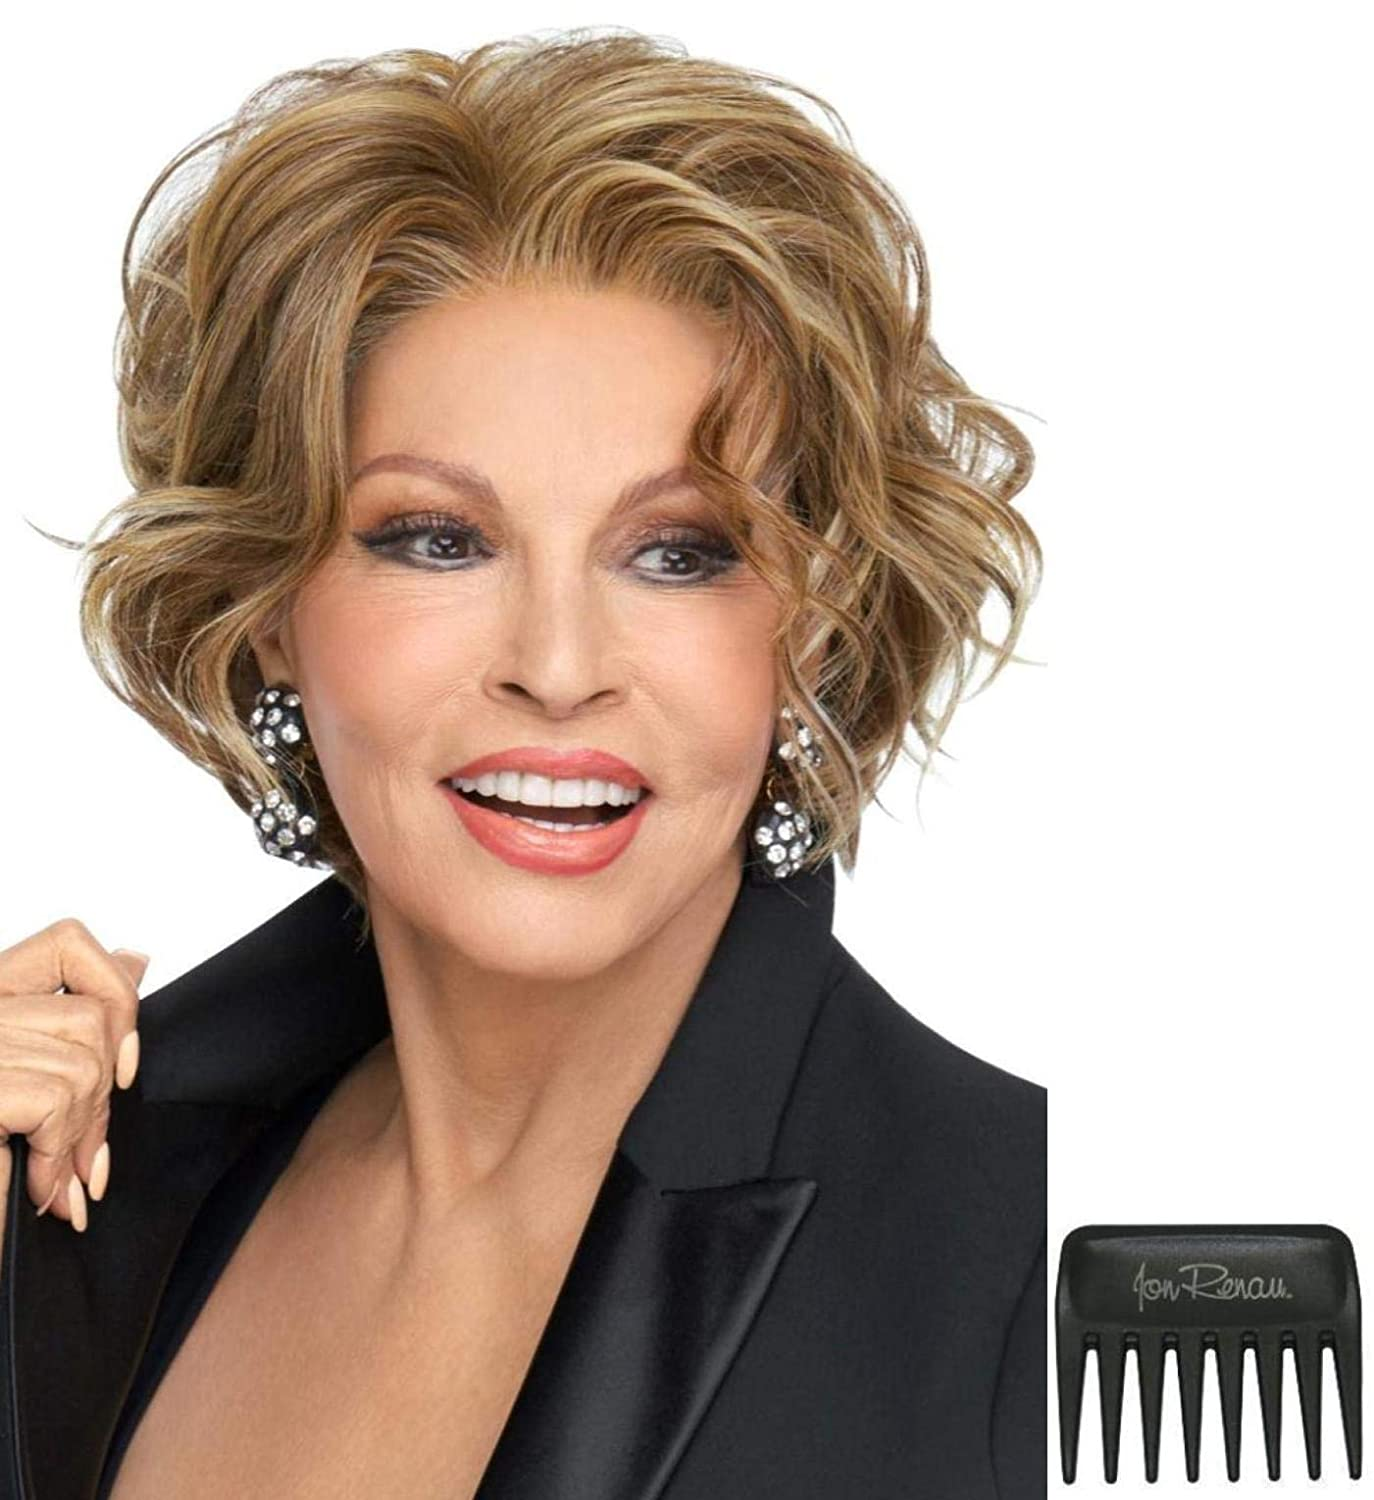 Bundle - 3 Items: Going Places Wig by Raquel Welch, Christy's Wigs Q & A Booklet & Wide Tooth Comb - Color: RL1425